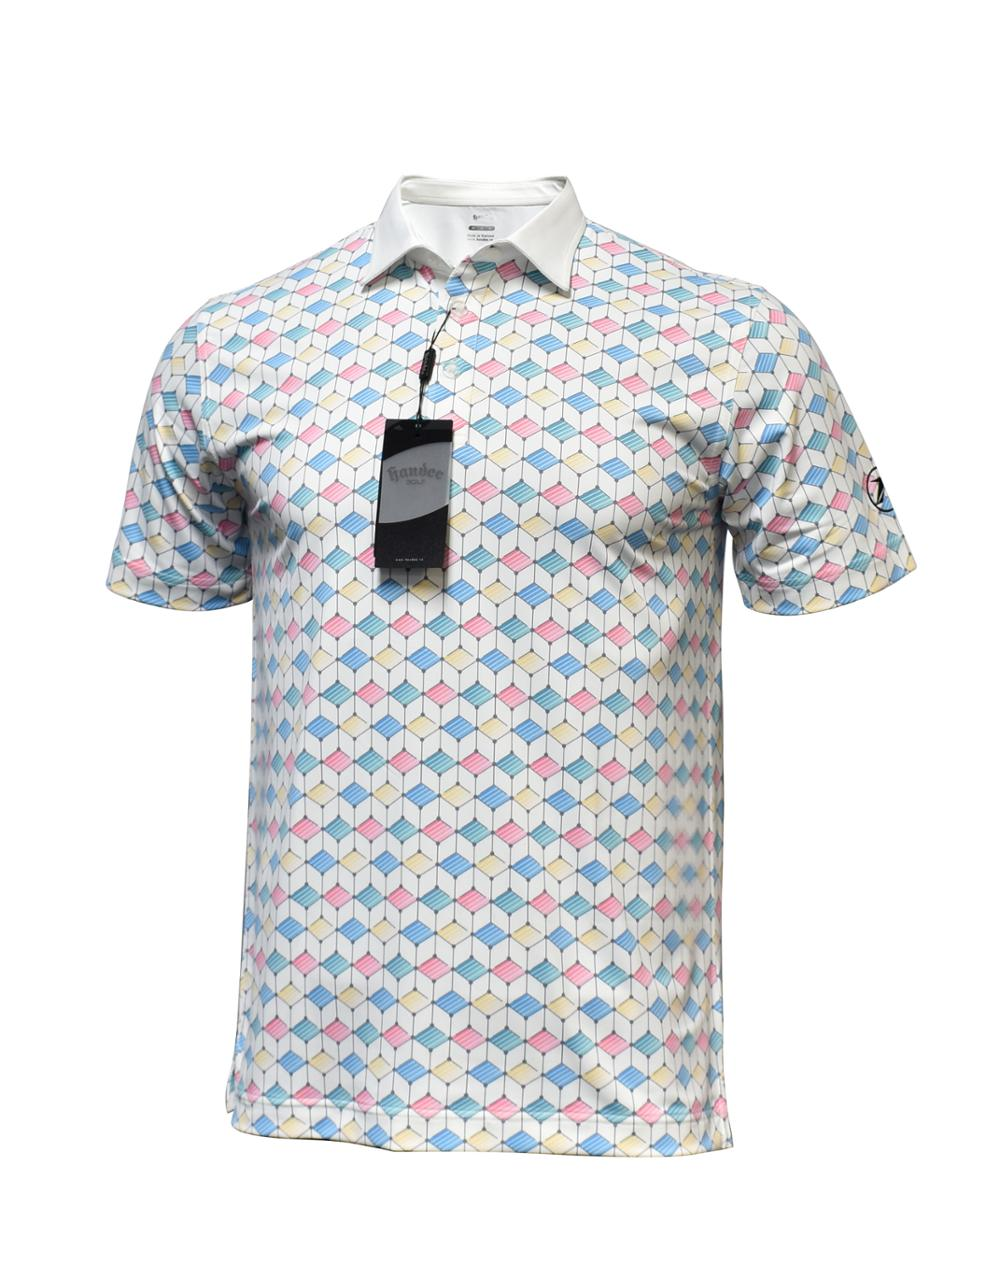 OEM High Quality Clothes Fashion Polyester Printed Men'S Golf Polo T Shirt